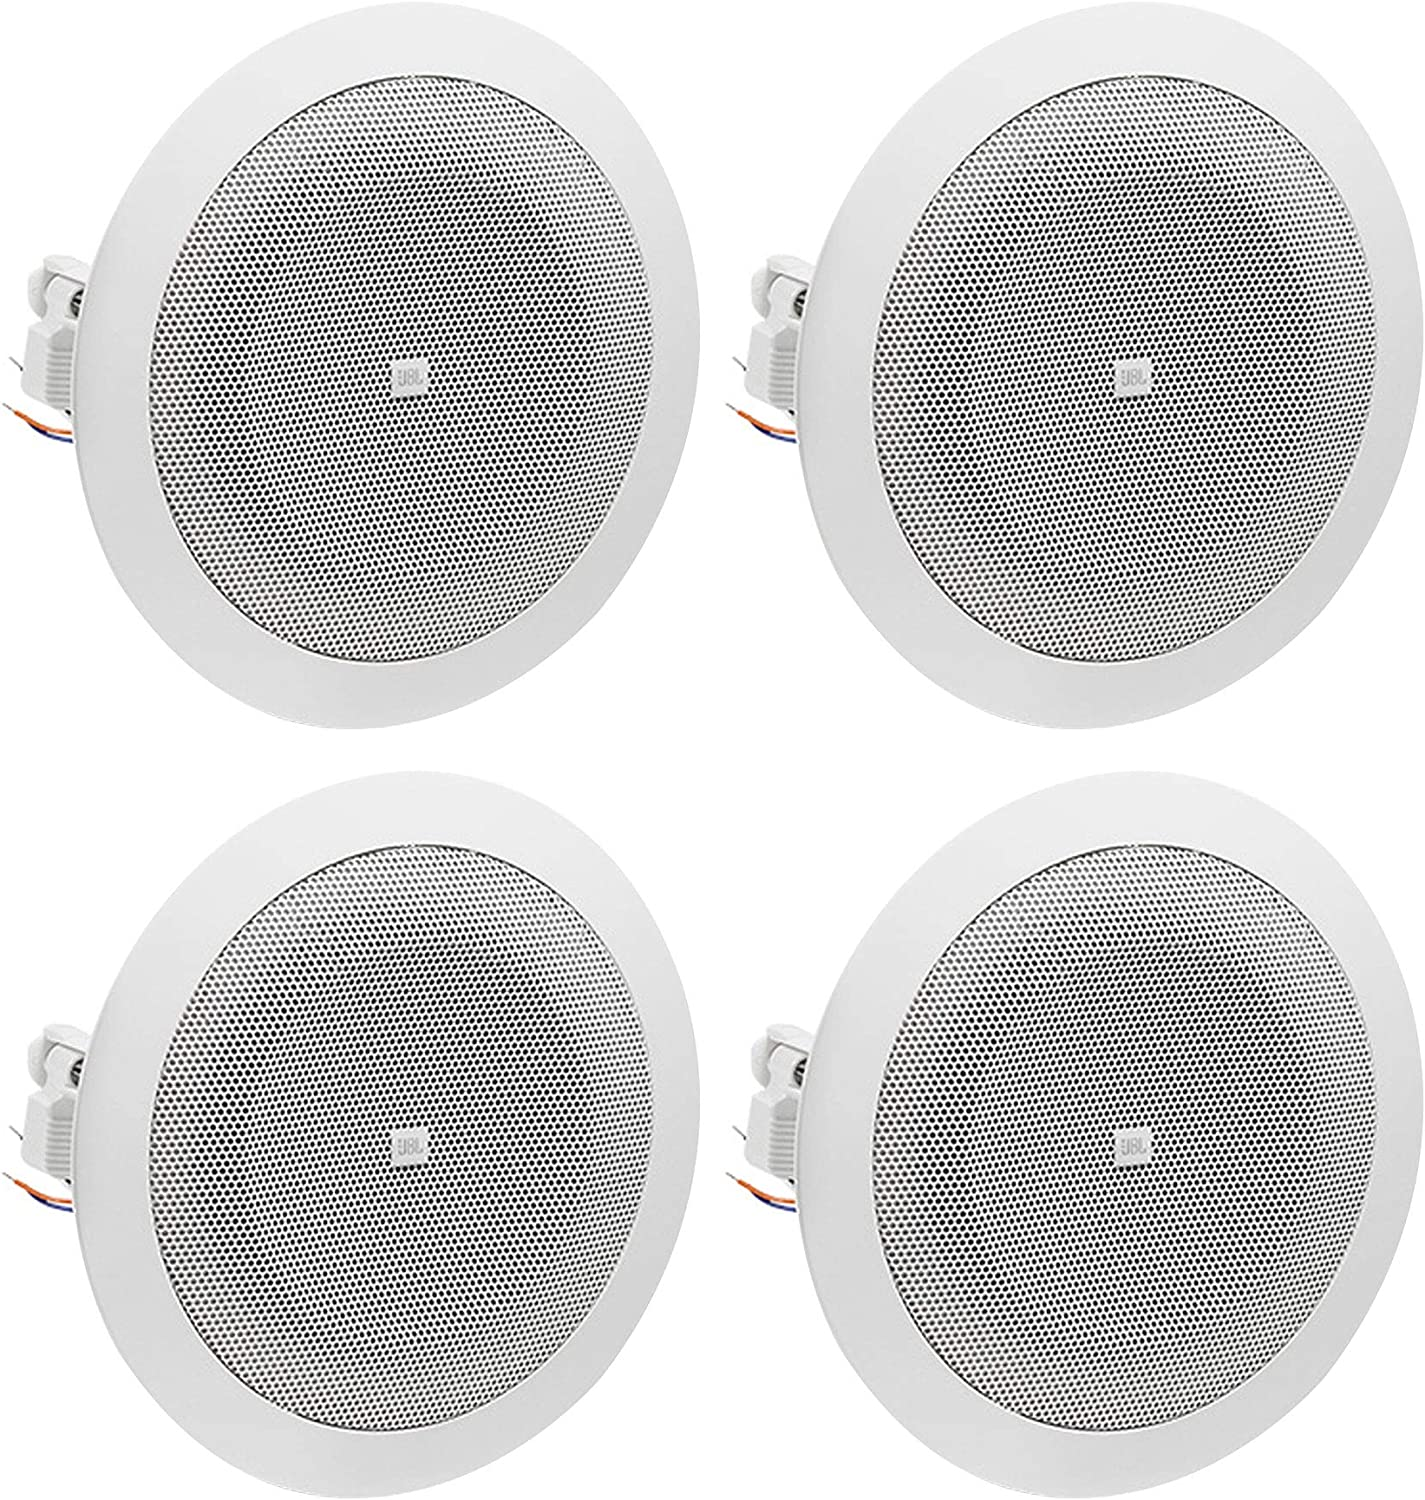 JBL 8124 - Full-Range In-Ceiling Loudspeaker with 70 Volt/100 Volt Taps (4 Pack)